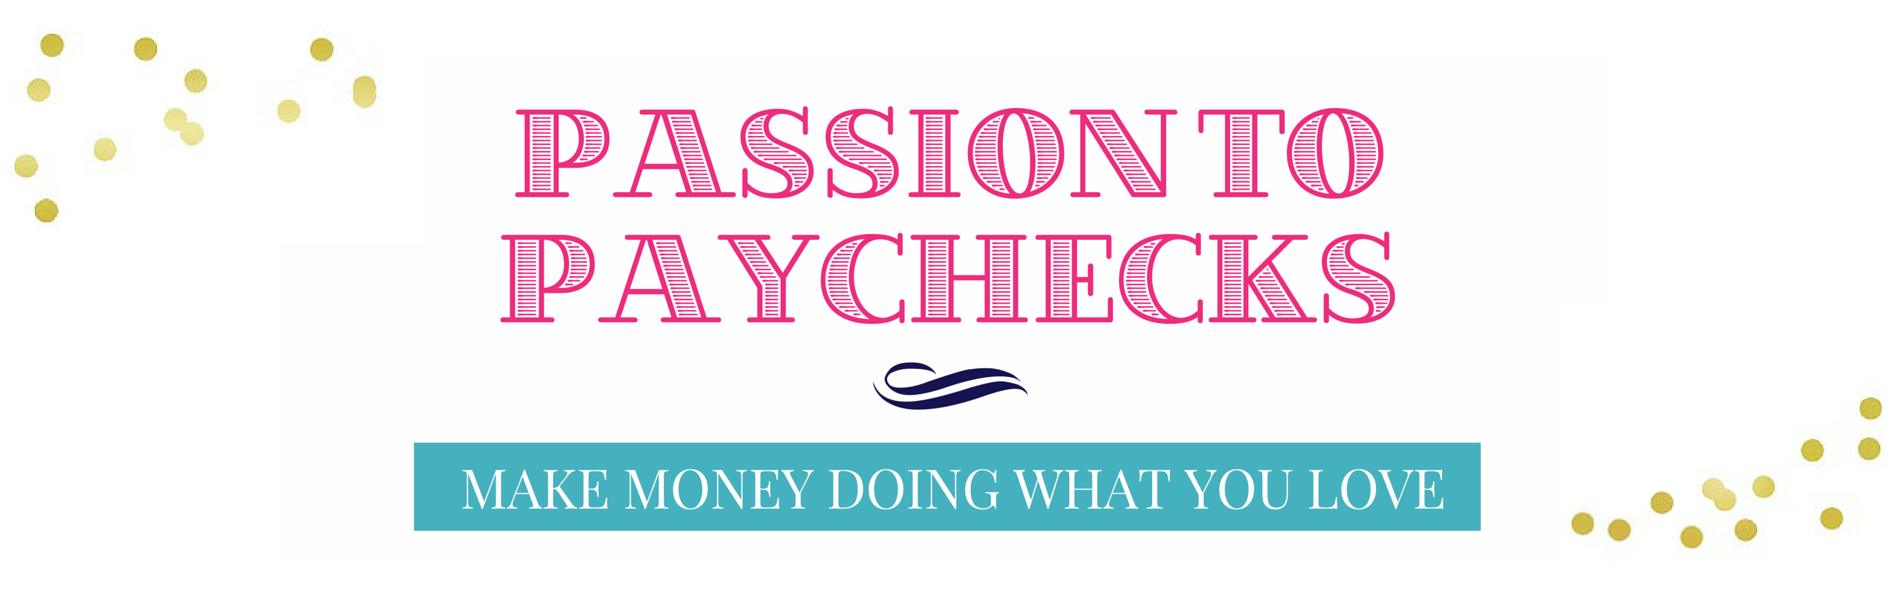 Passion to Paychecks banner